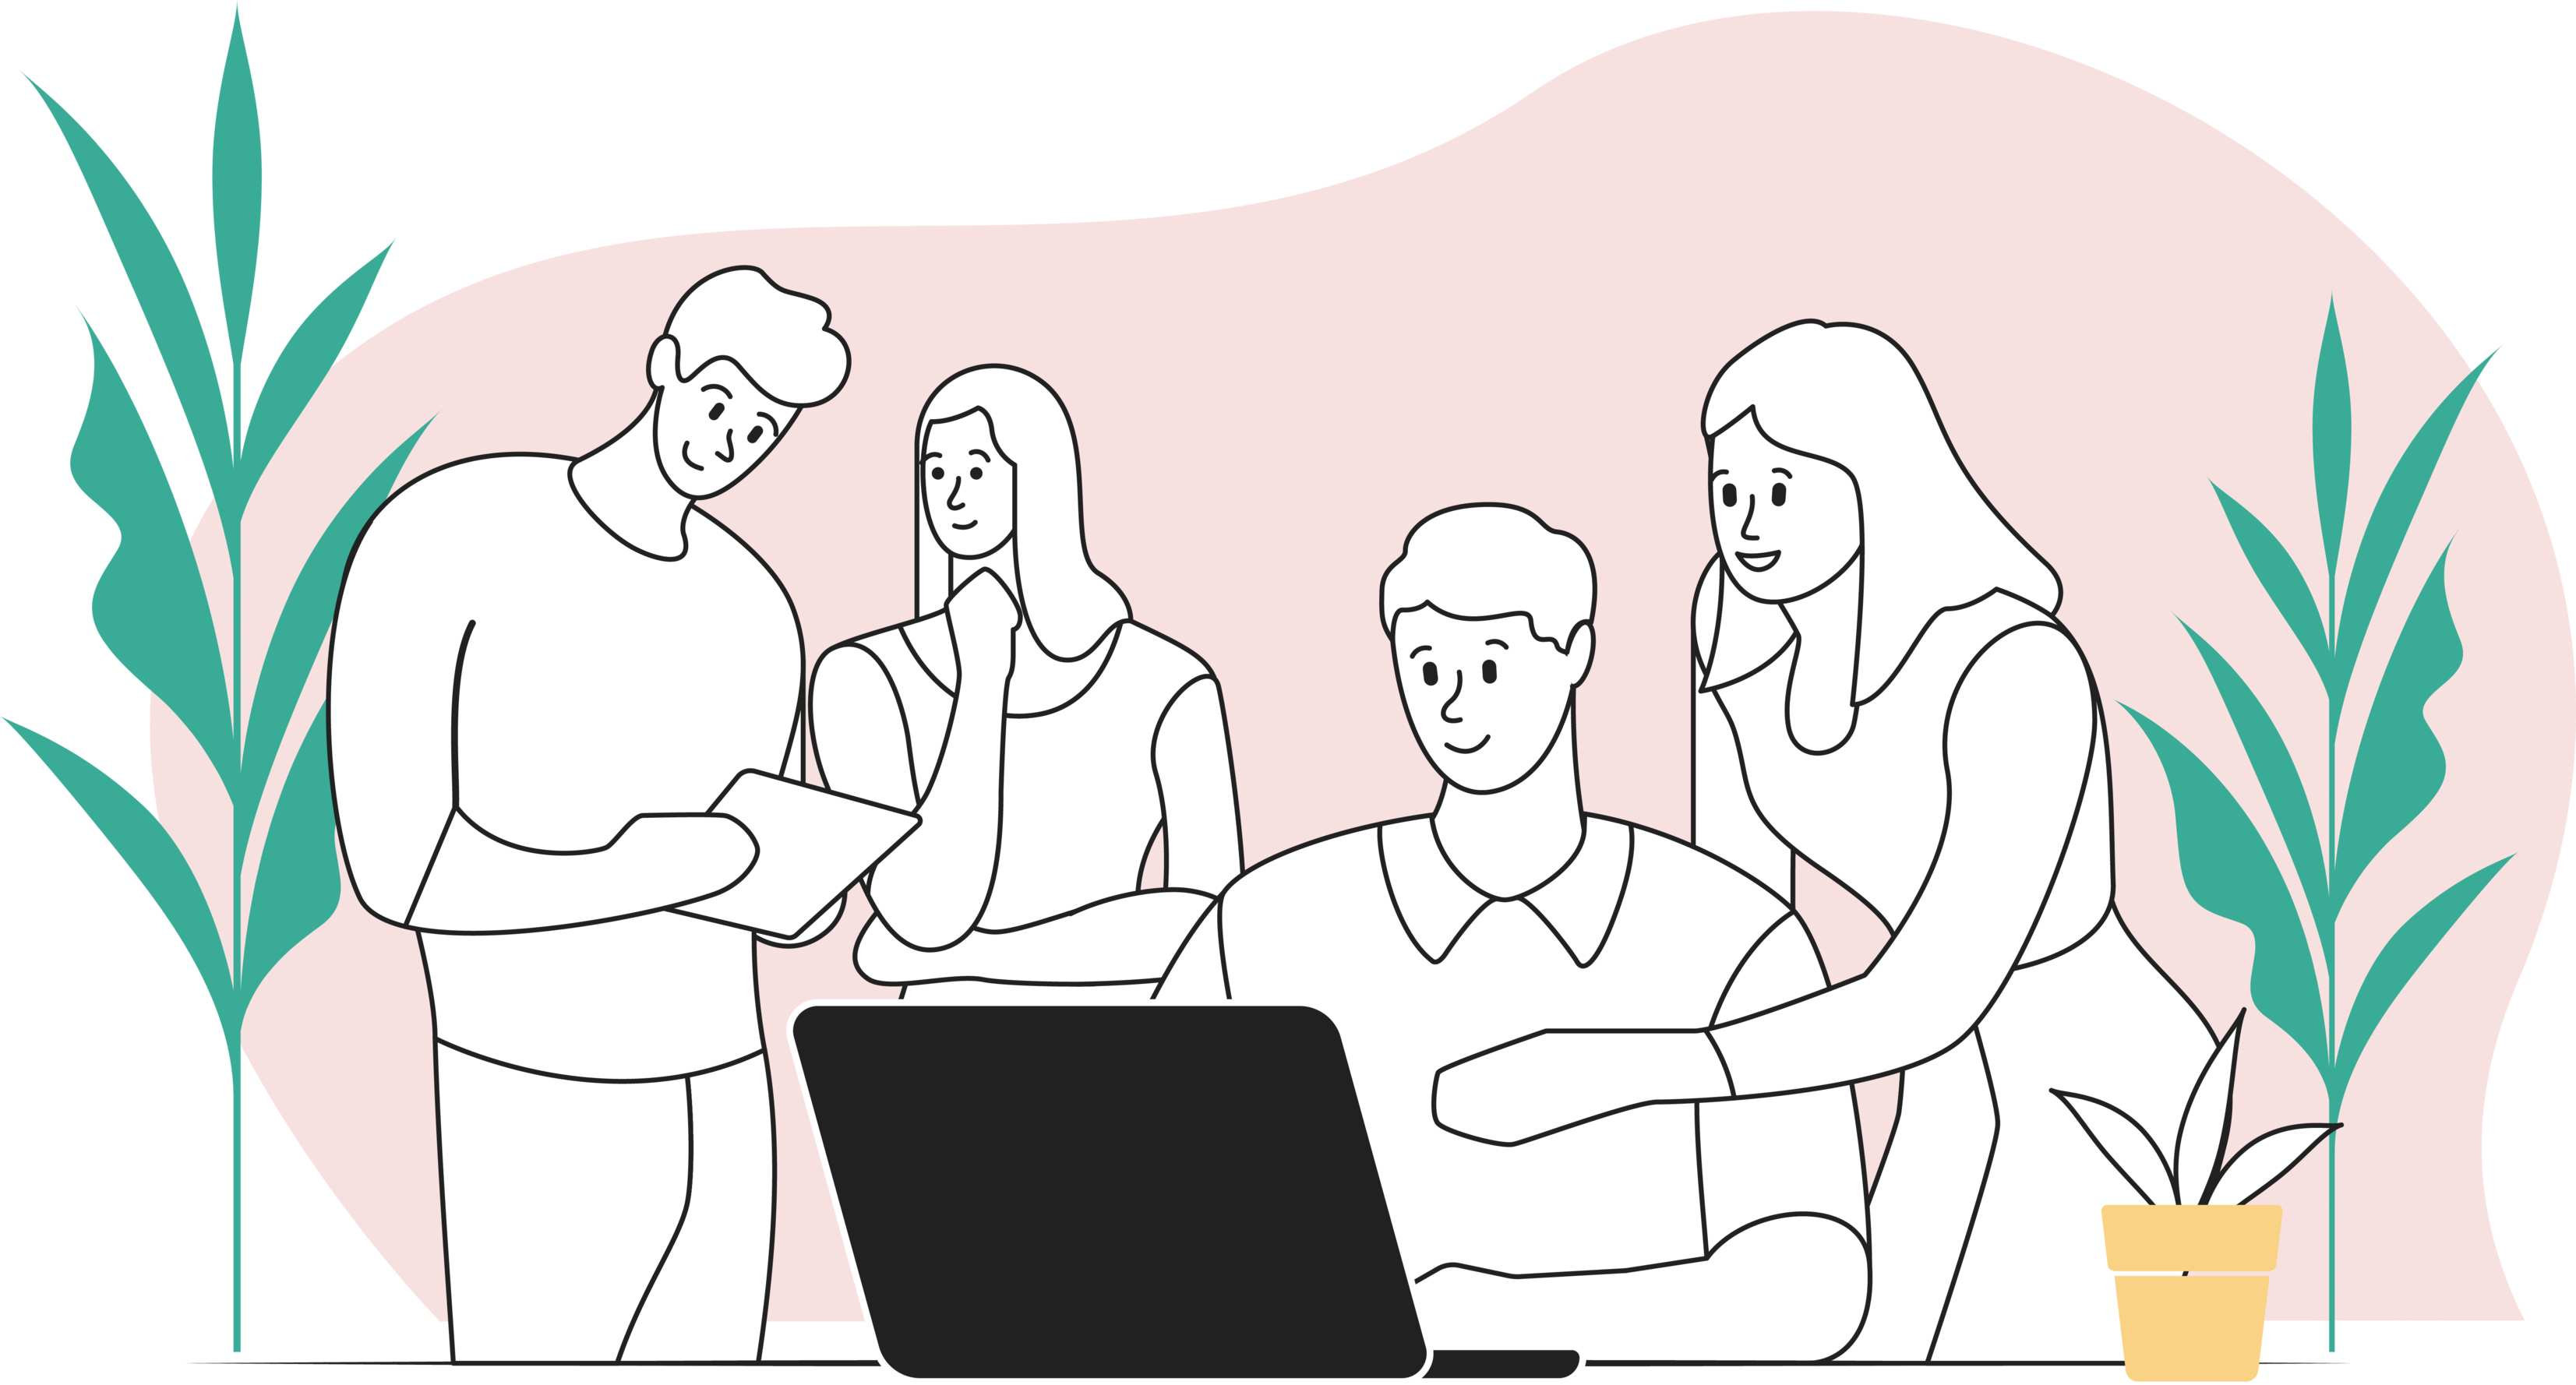 Image of a team of people working collaboratively as a B Corp business